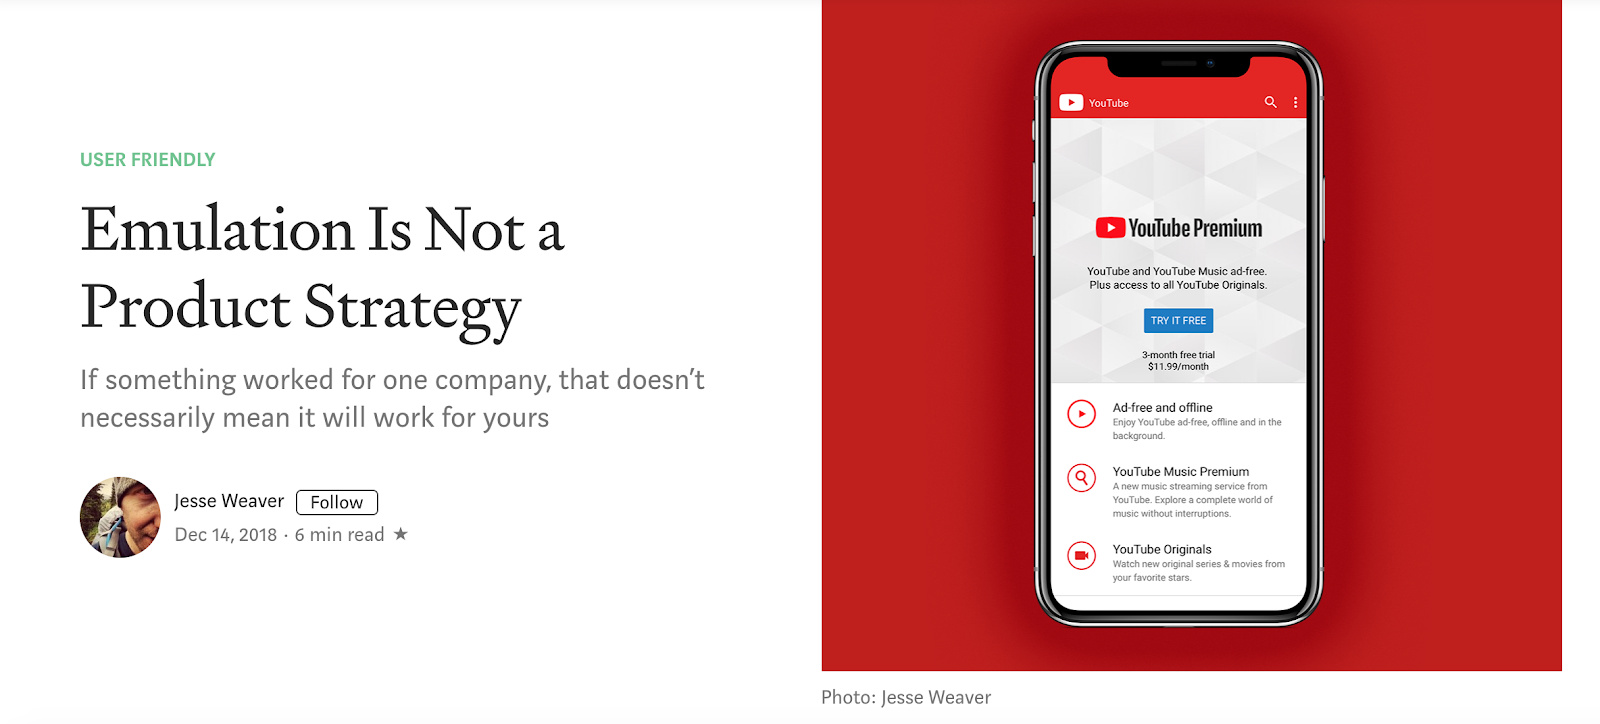 "This is an image of an article about product strategy that shows a cell phone screen with youtube premium. The title of the article is ""Emulation is not a product strategy"""